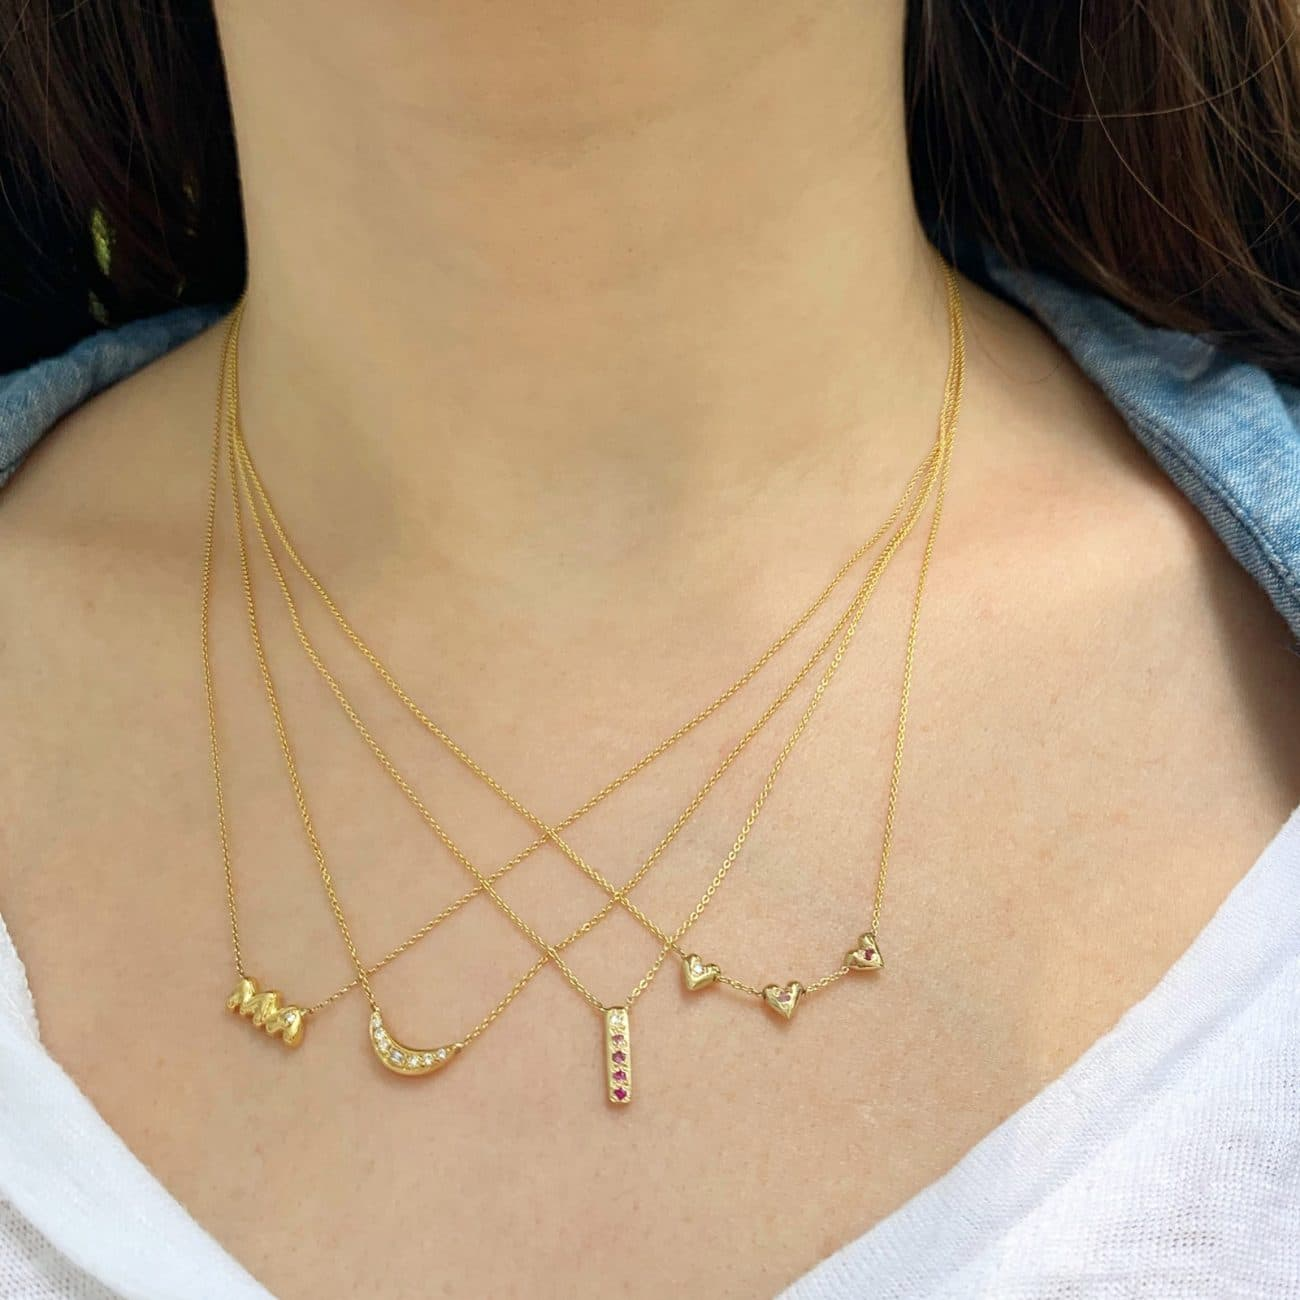 wearing the teeny tiny heart necklace and skinny bar necklace